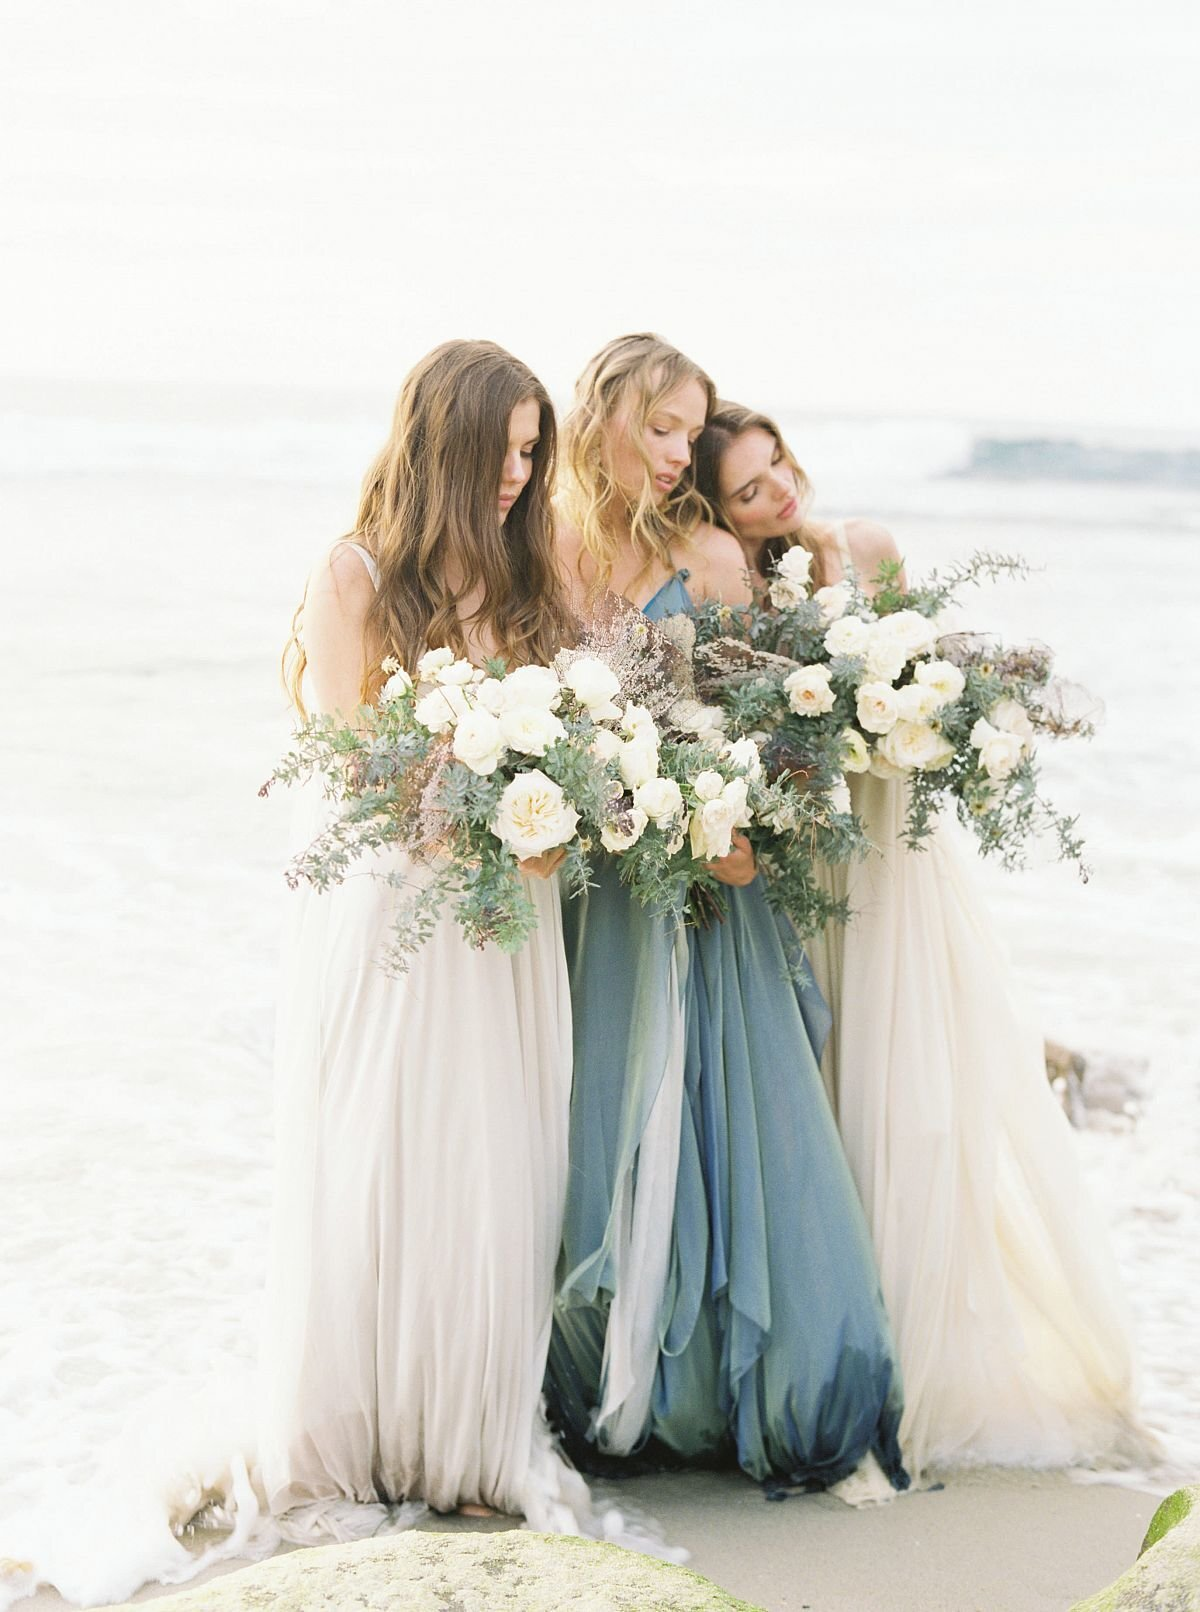 Coastal Beach Wedding Inspiration- Ashley Rae Photography Arizona and California Film Photographer6